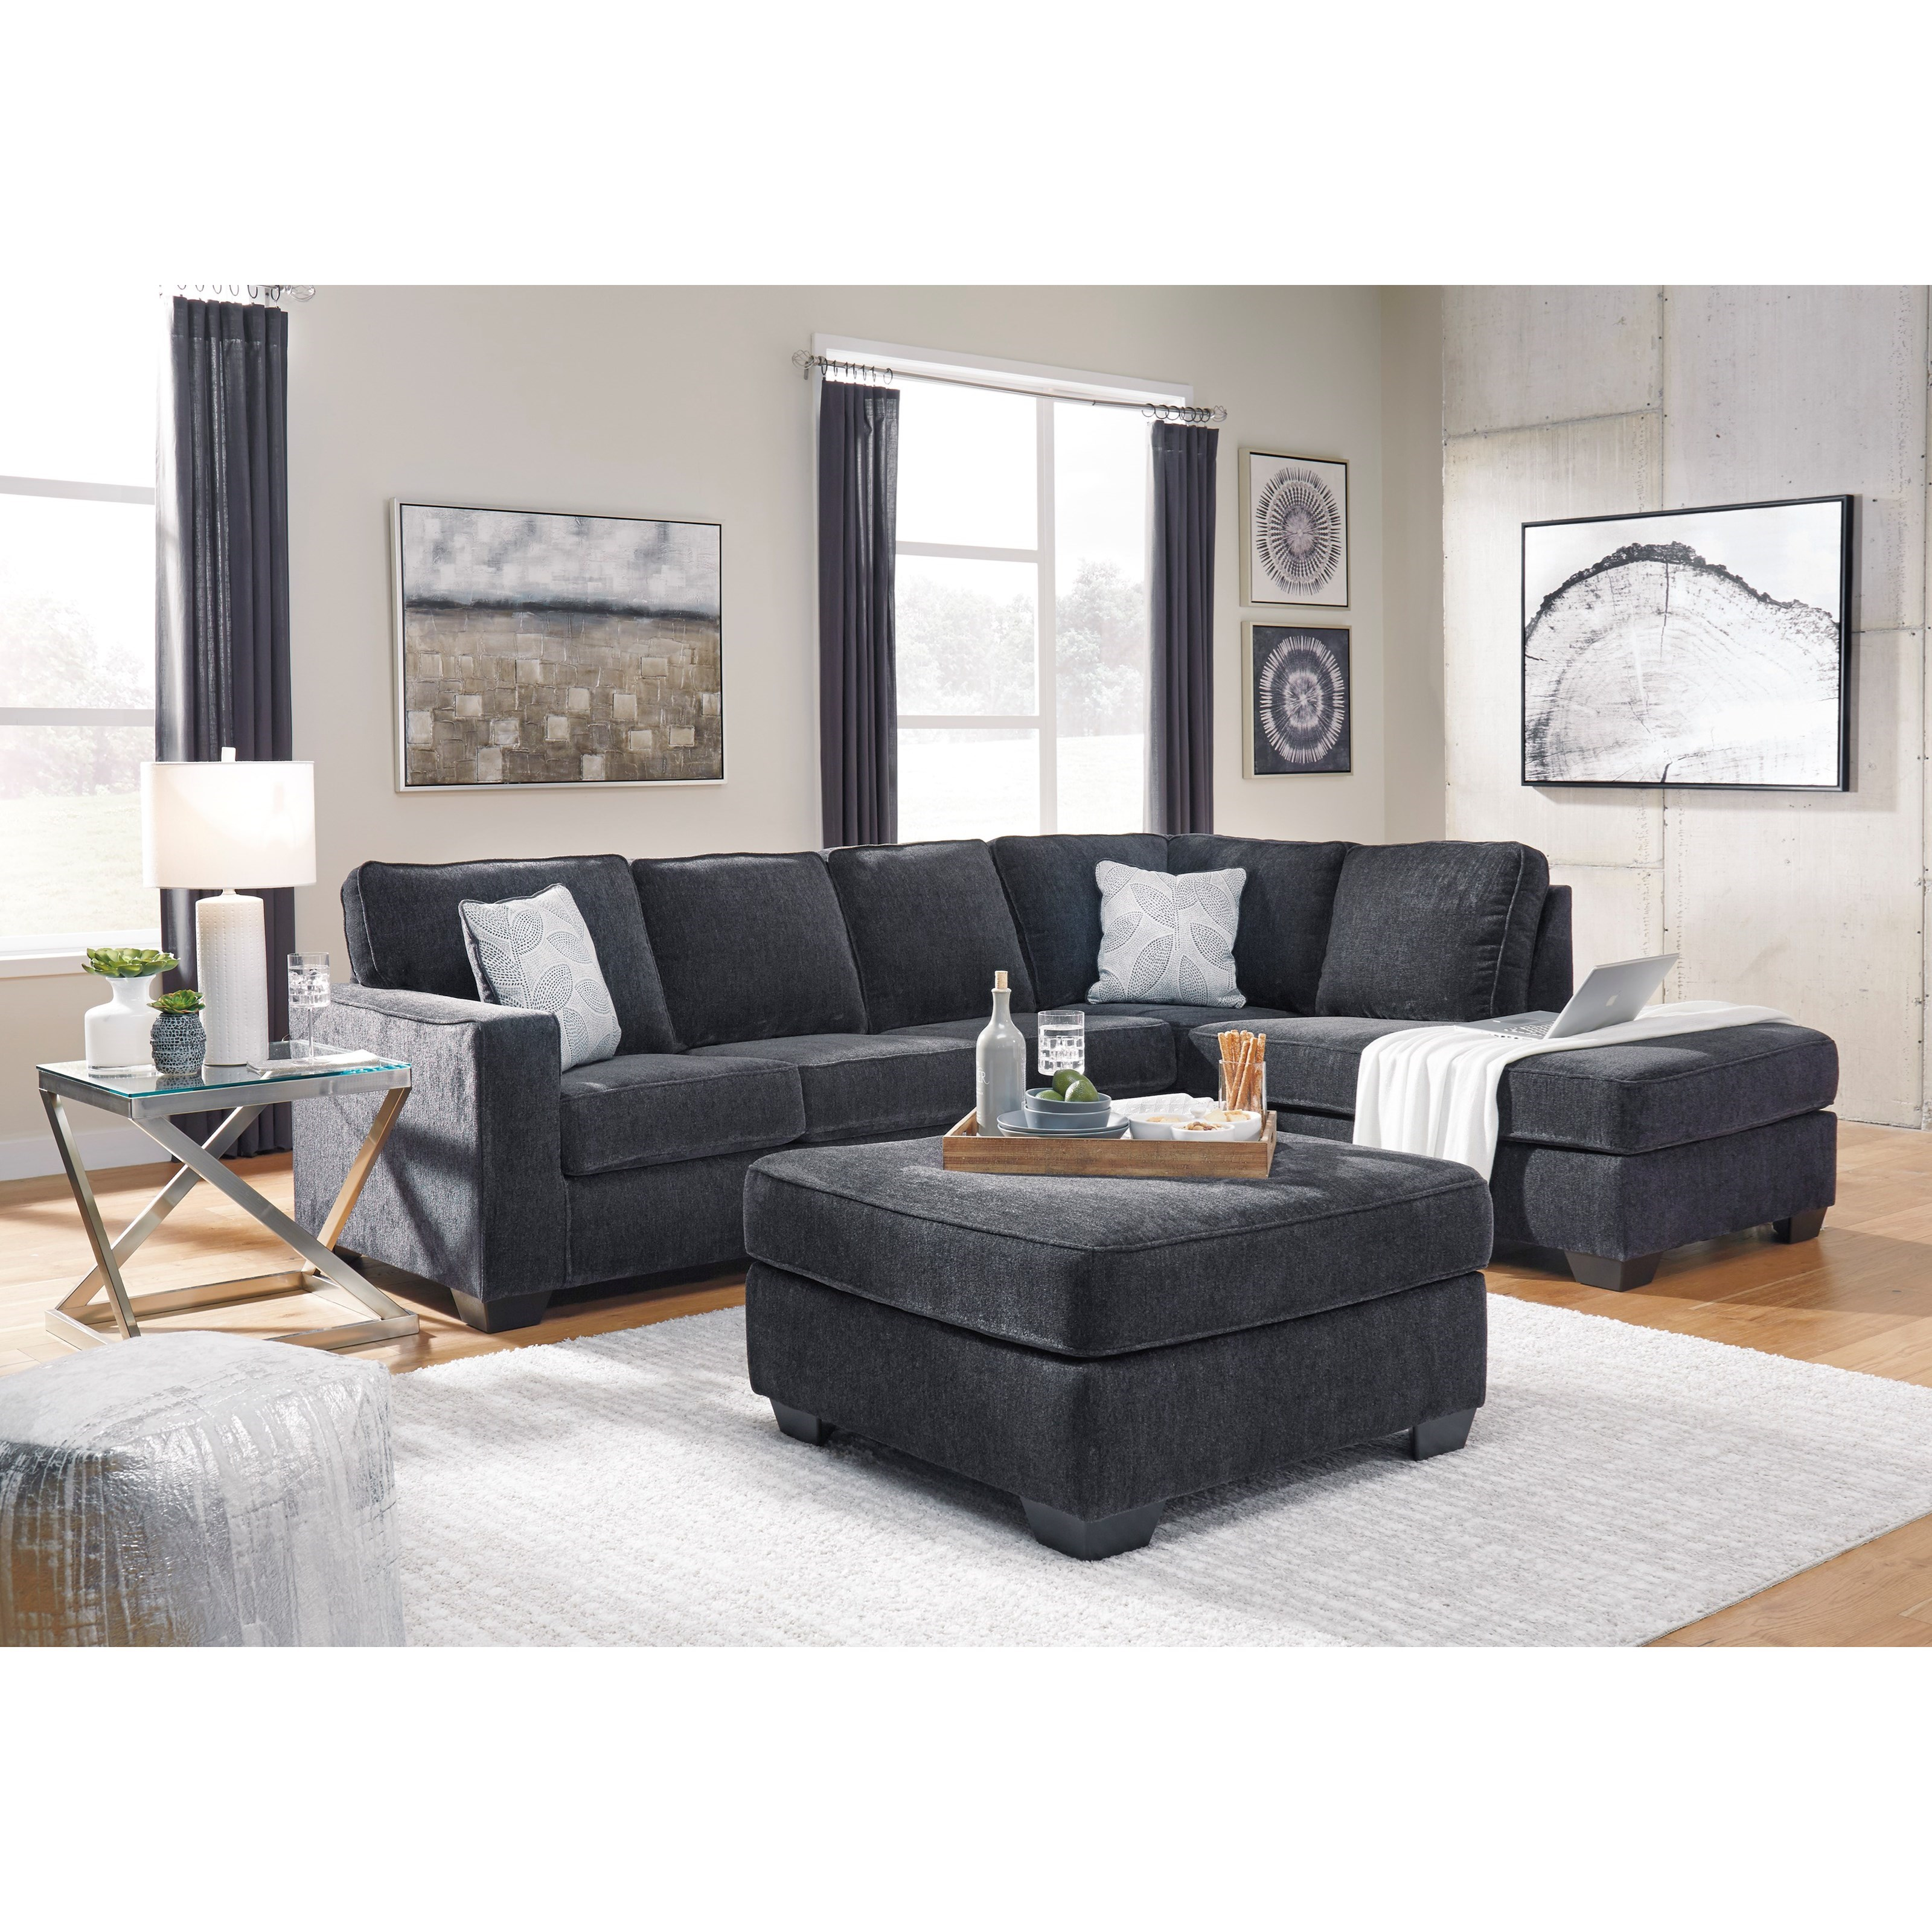 Altari Living Room Group by Signature Design by Ashley at Lapeer Furniture & Mattress Center